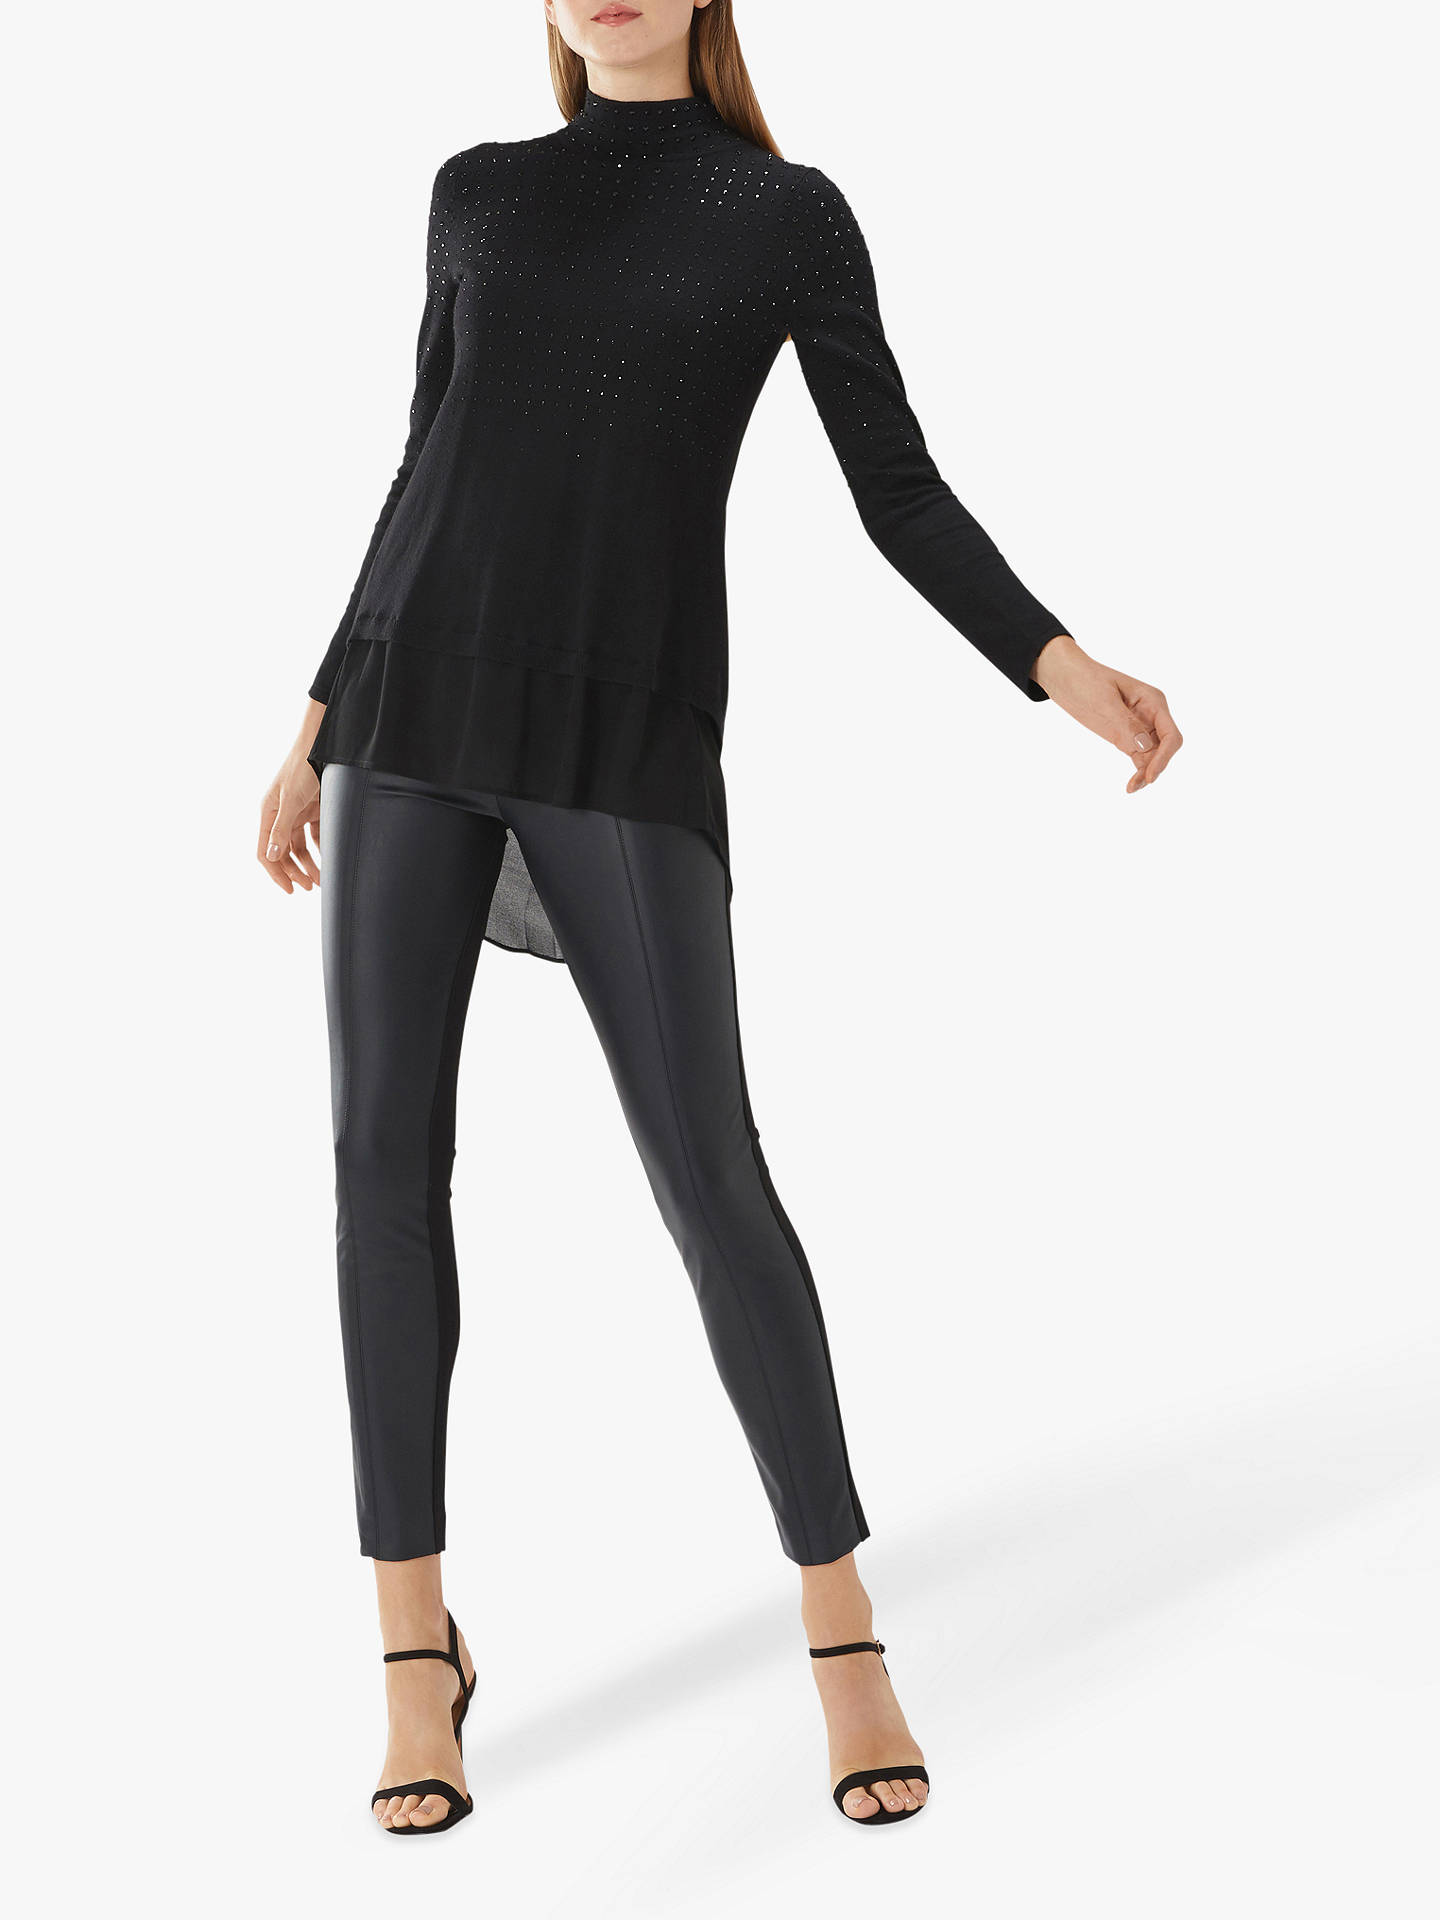 BuyCoast Otis Hotfix Knit Top, Black, 12 Online at johnlewis.com